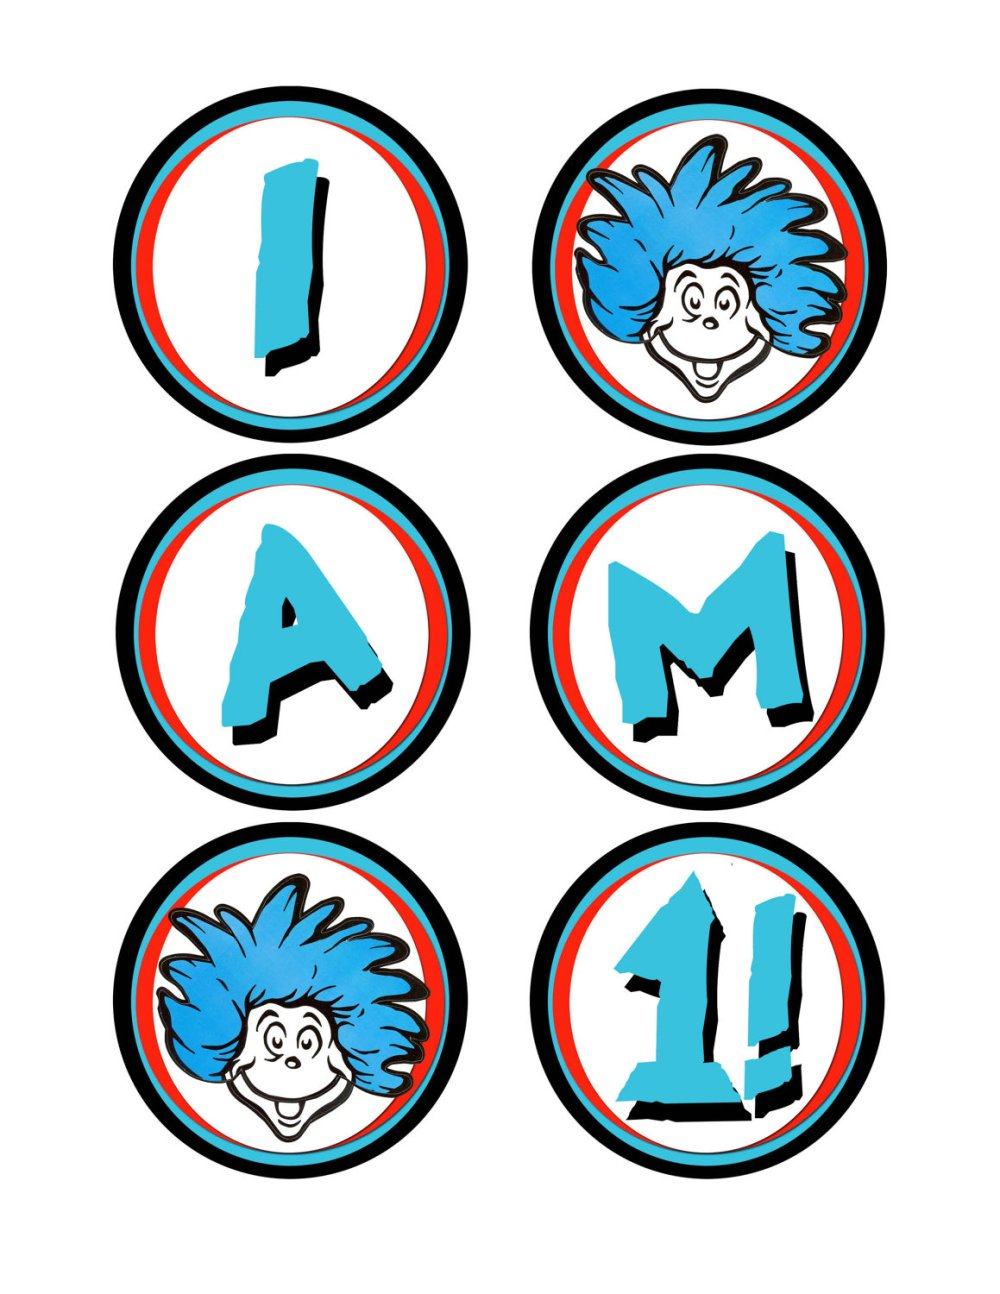 medium resolution of dr seuss hat fish clipart free clip art images image 4 3